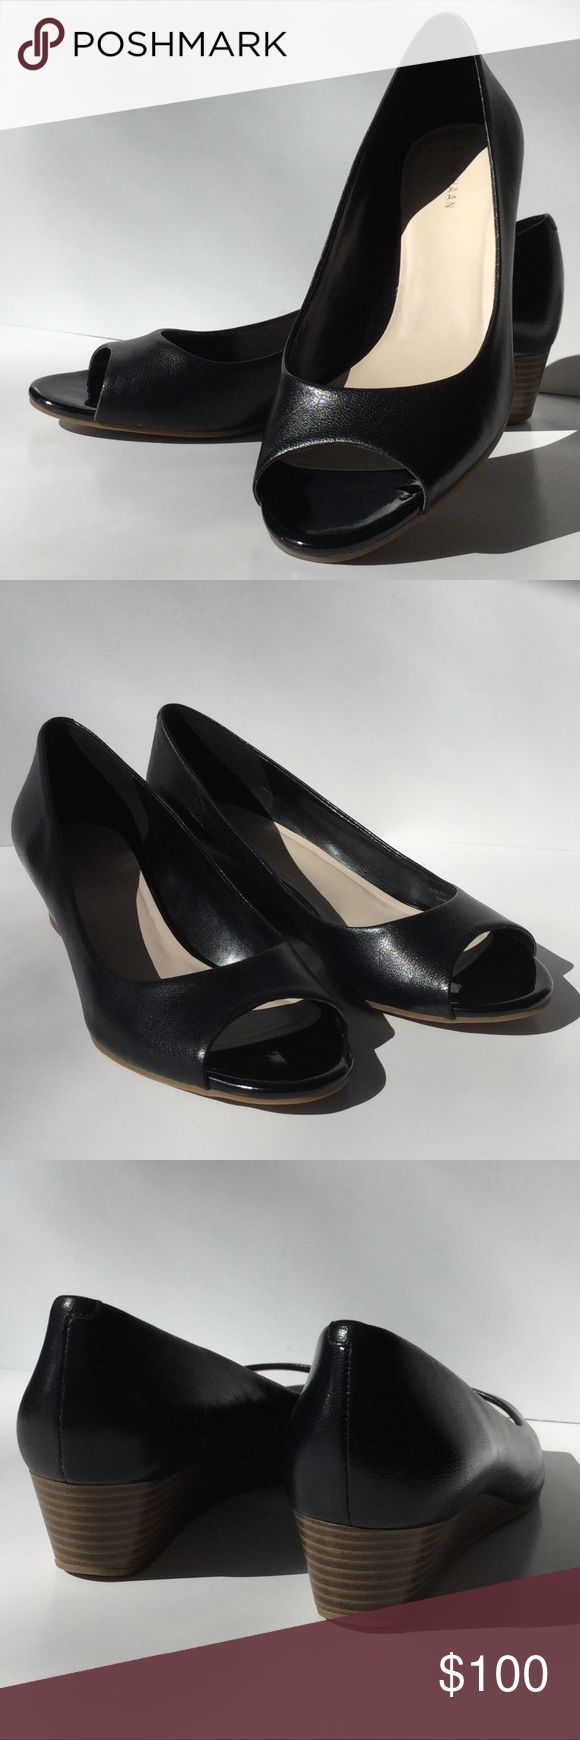 Cole Haan Leather Stacked Heel Peep Toe Wedges 8 Cole Haan black Leather Peep Toe Wedges with a Stacked Heel. Size 8 B. New without box. See pictures. Cole Haan Shoes Wedges